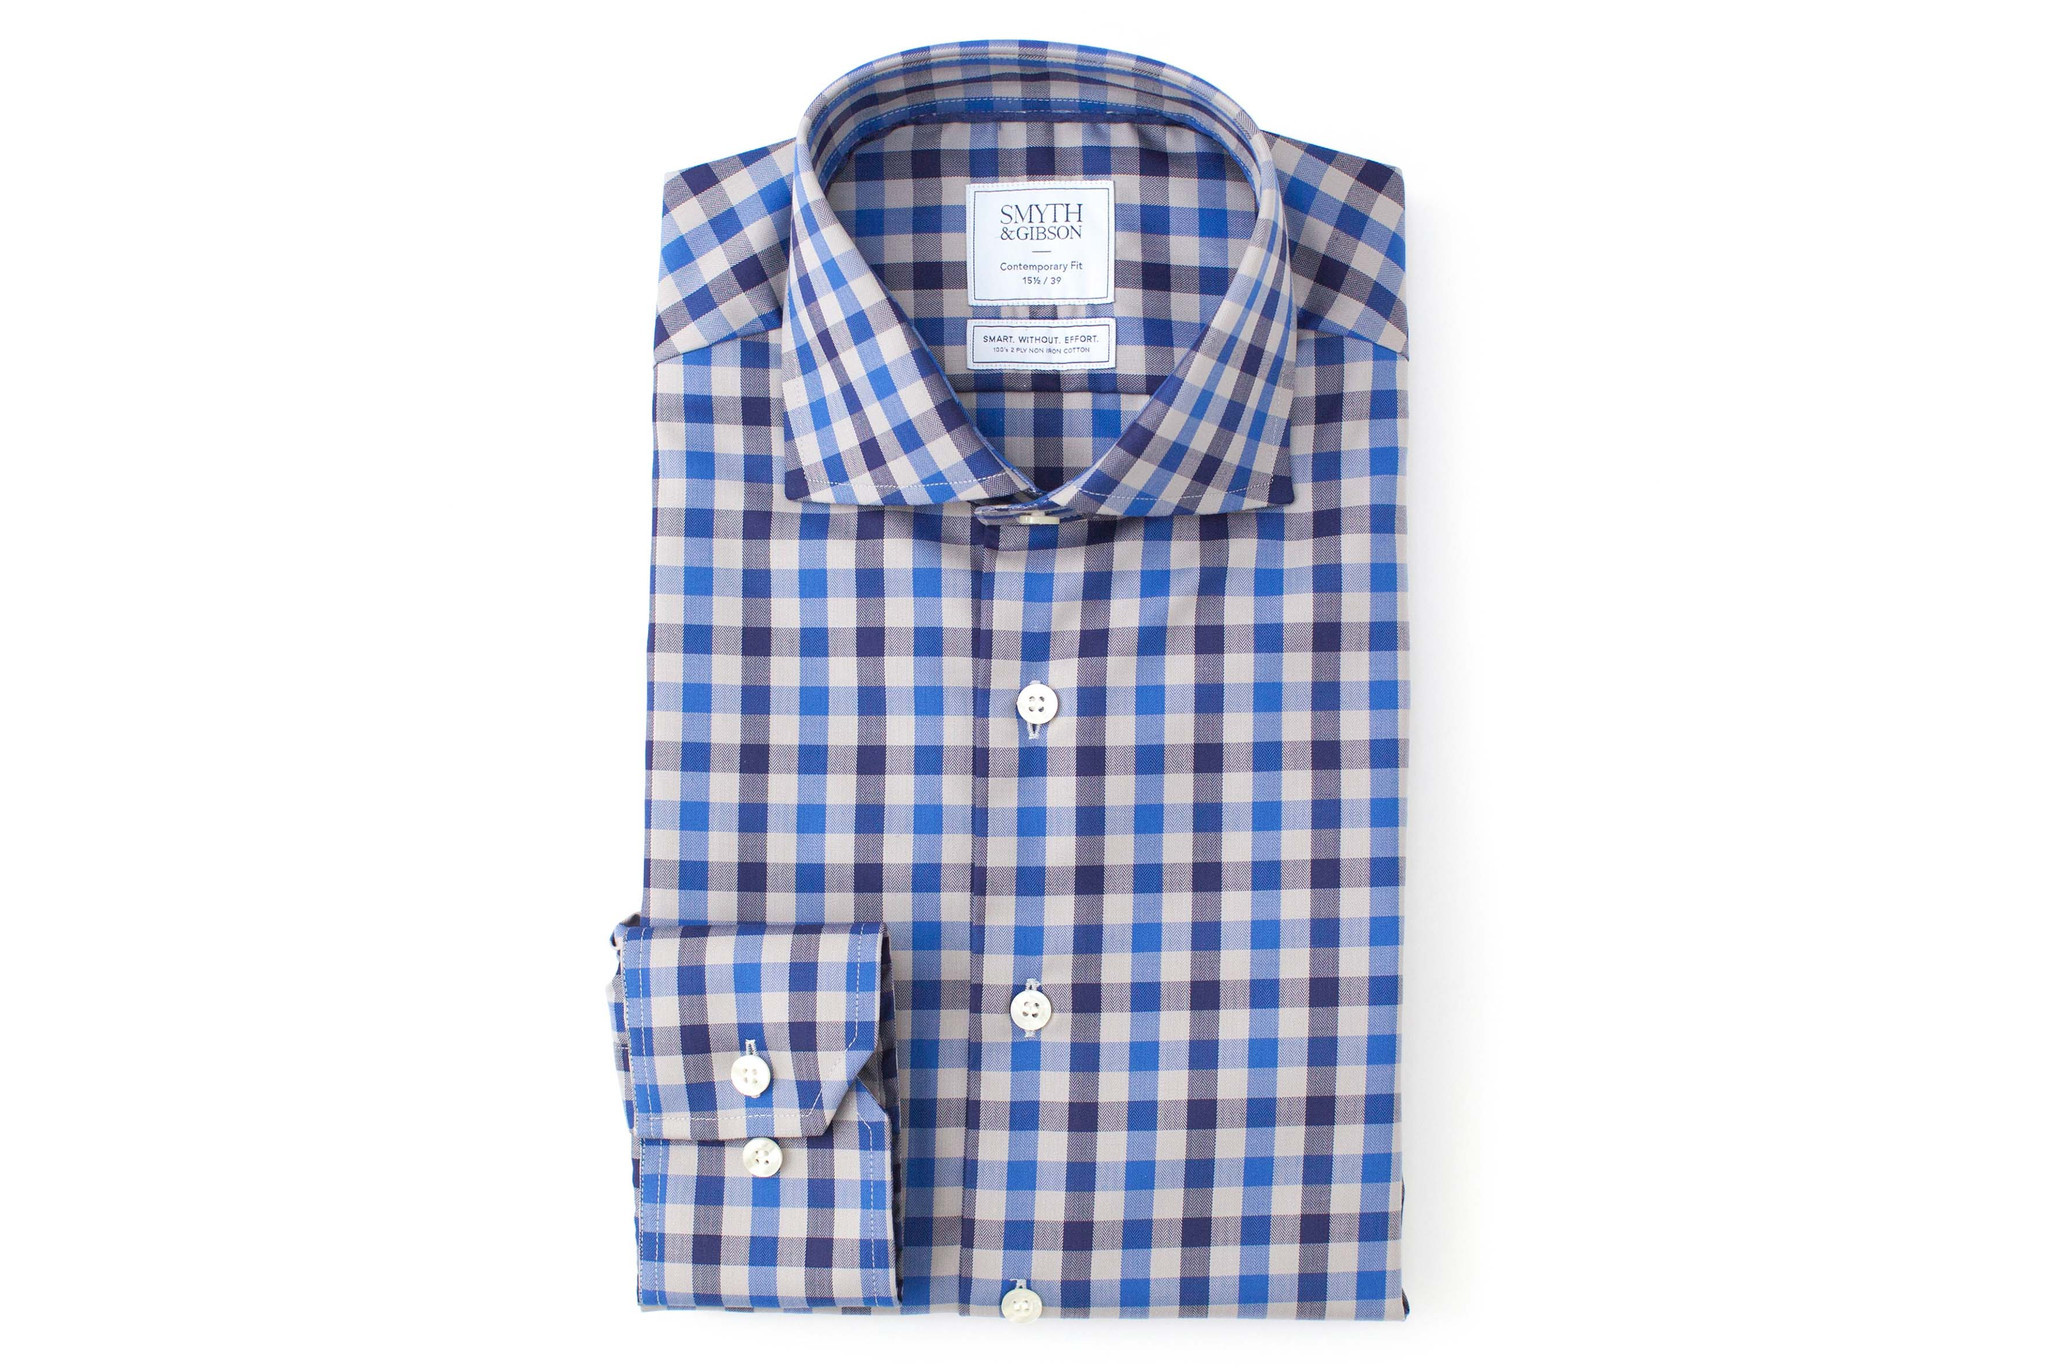 Smyth & Gibson Non-Iron Herringbone Twill Check Contemporary Fit Shirt in Blue